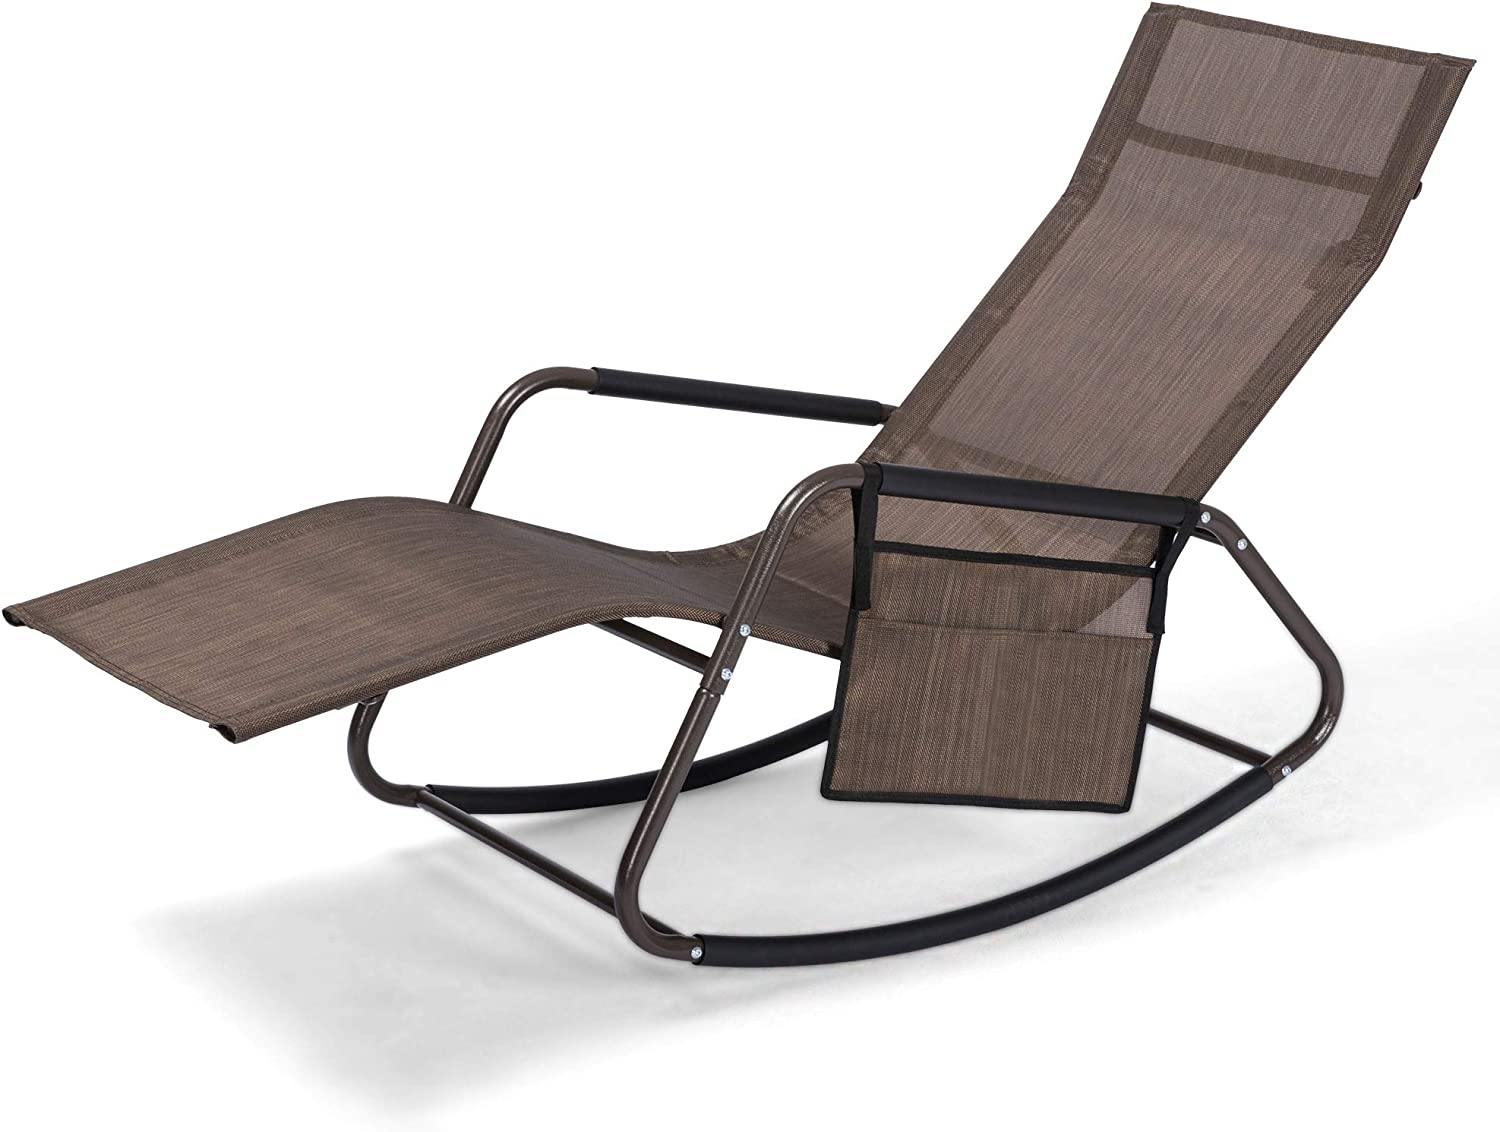 Beach Pool Reclining Lounge Chair with Pocket, Ergonomic, 265 lb Weight Capacity, Patio Lounge Chair Recliner Lawn Chair Outdoor Pool Furniture(Brown)